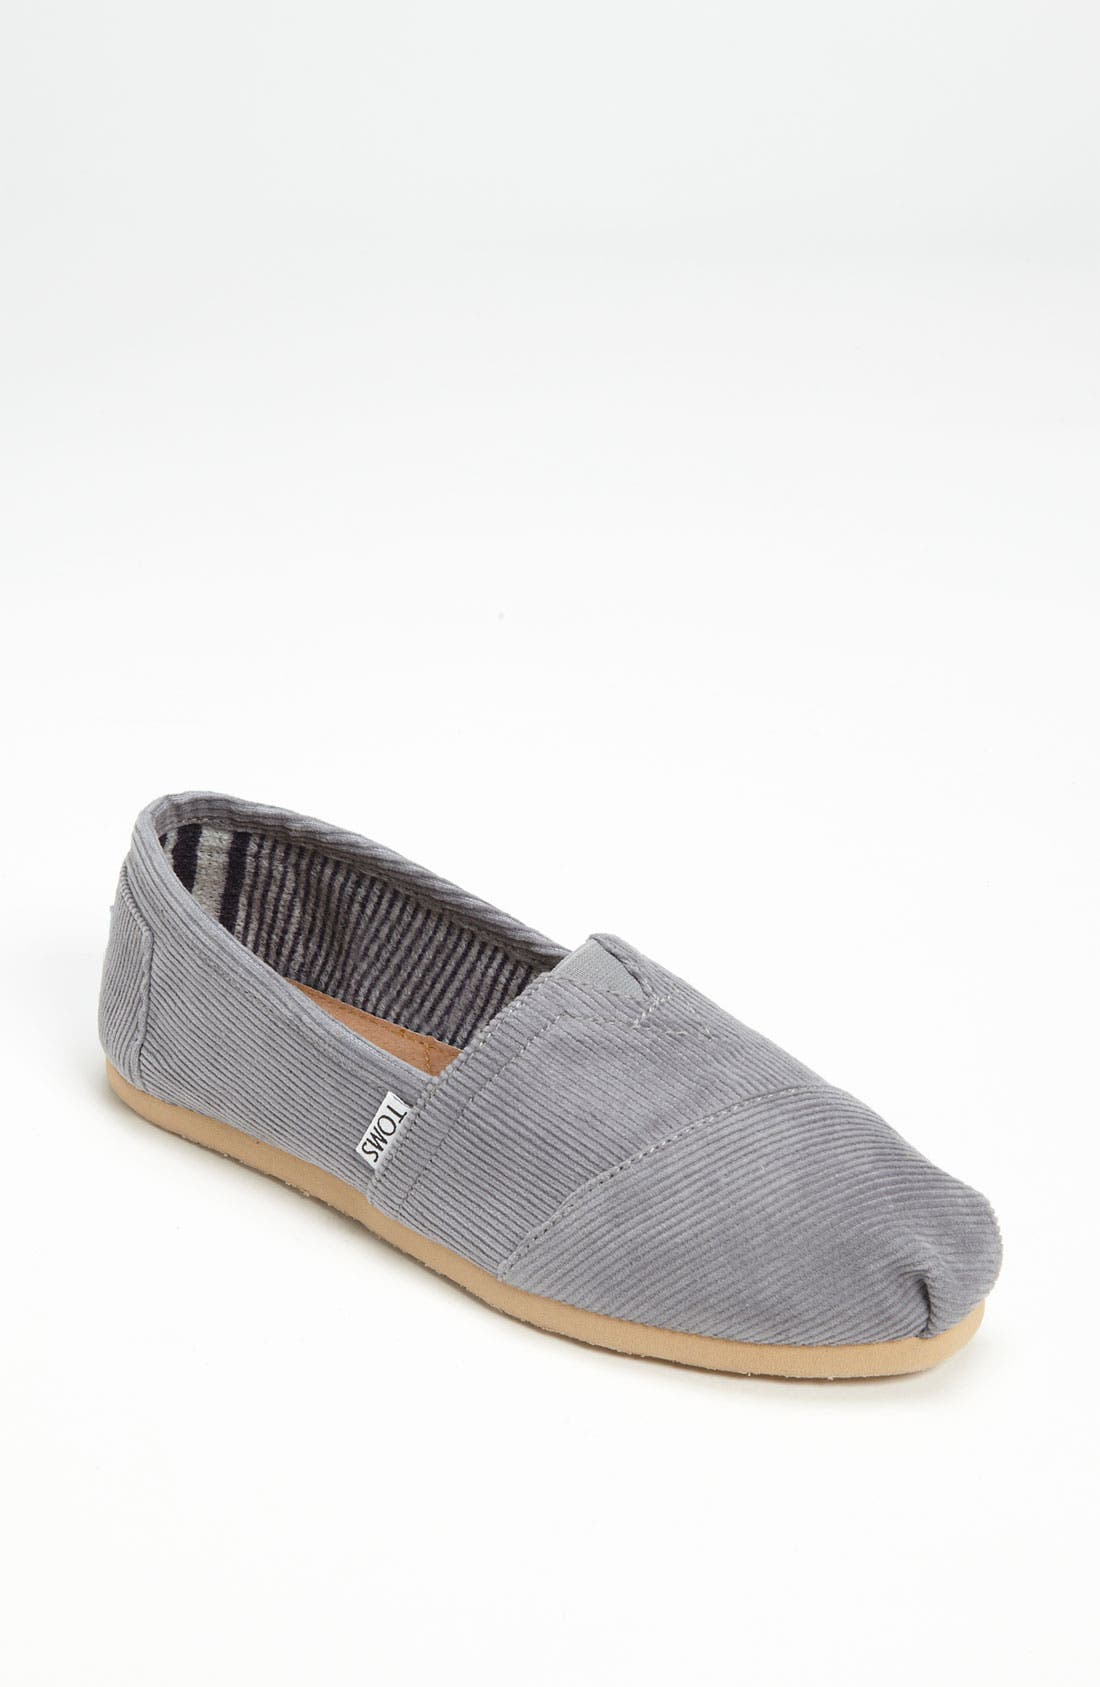 Alternate Image 1 Selected - TOMS 'Classic' Corduroy Slip-On (Women)